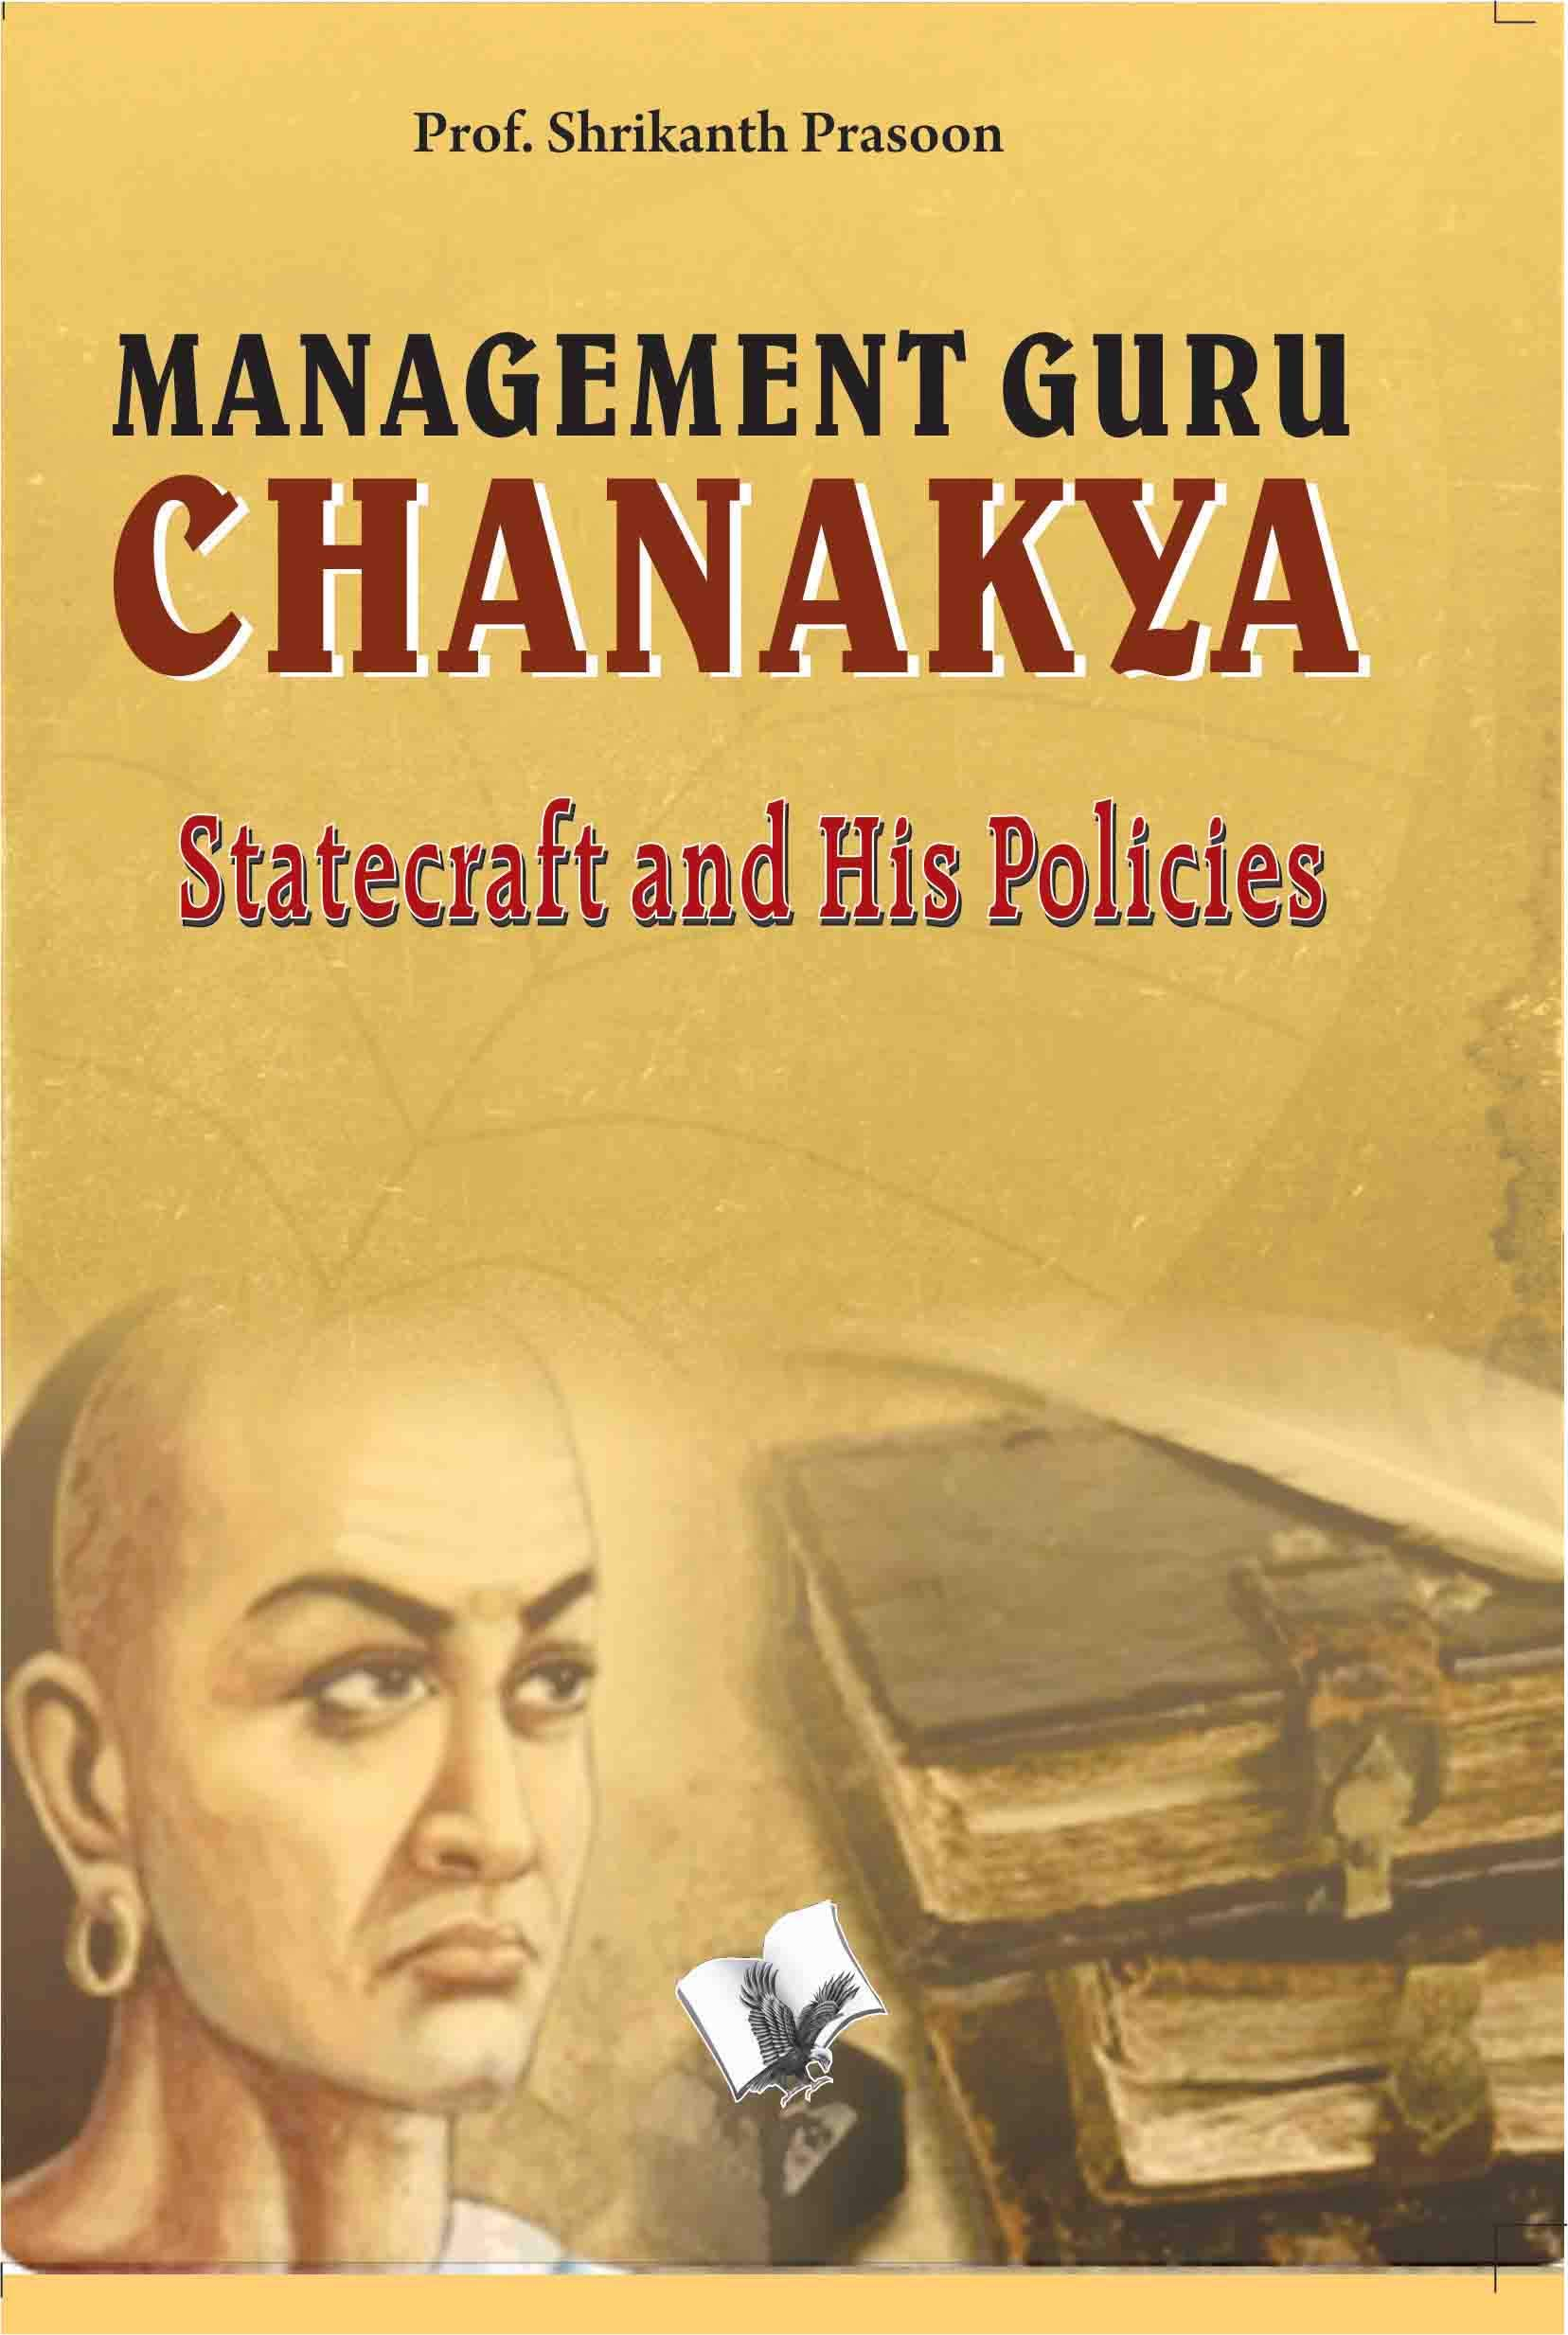 MANAGEMENT GURU CHANAKYA: STATECRAFT AND HIS POLICIES THAT CHANGED THE DESTINY OF INDIA